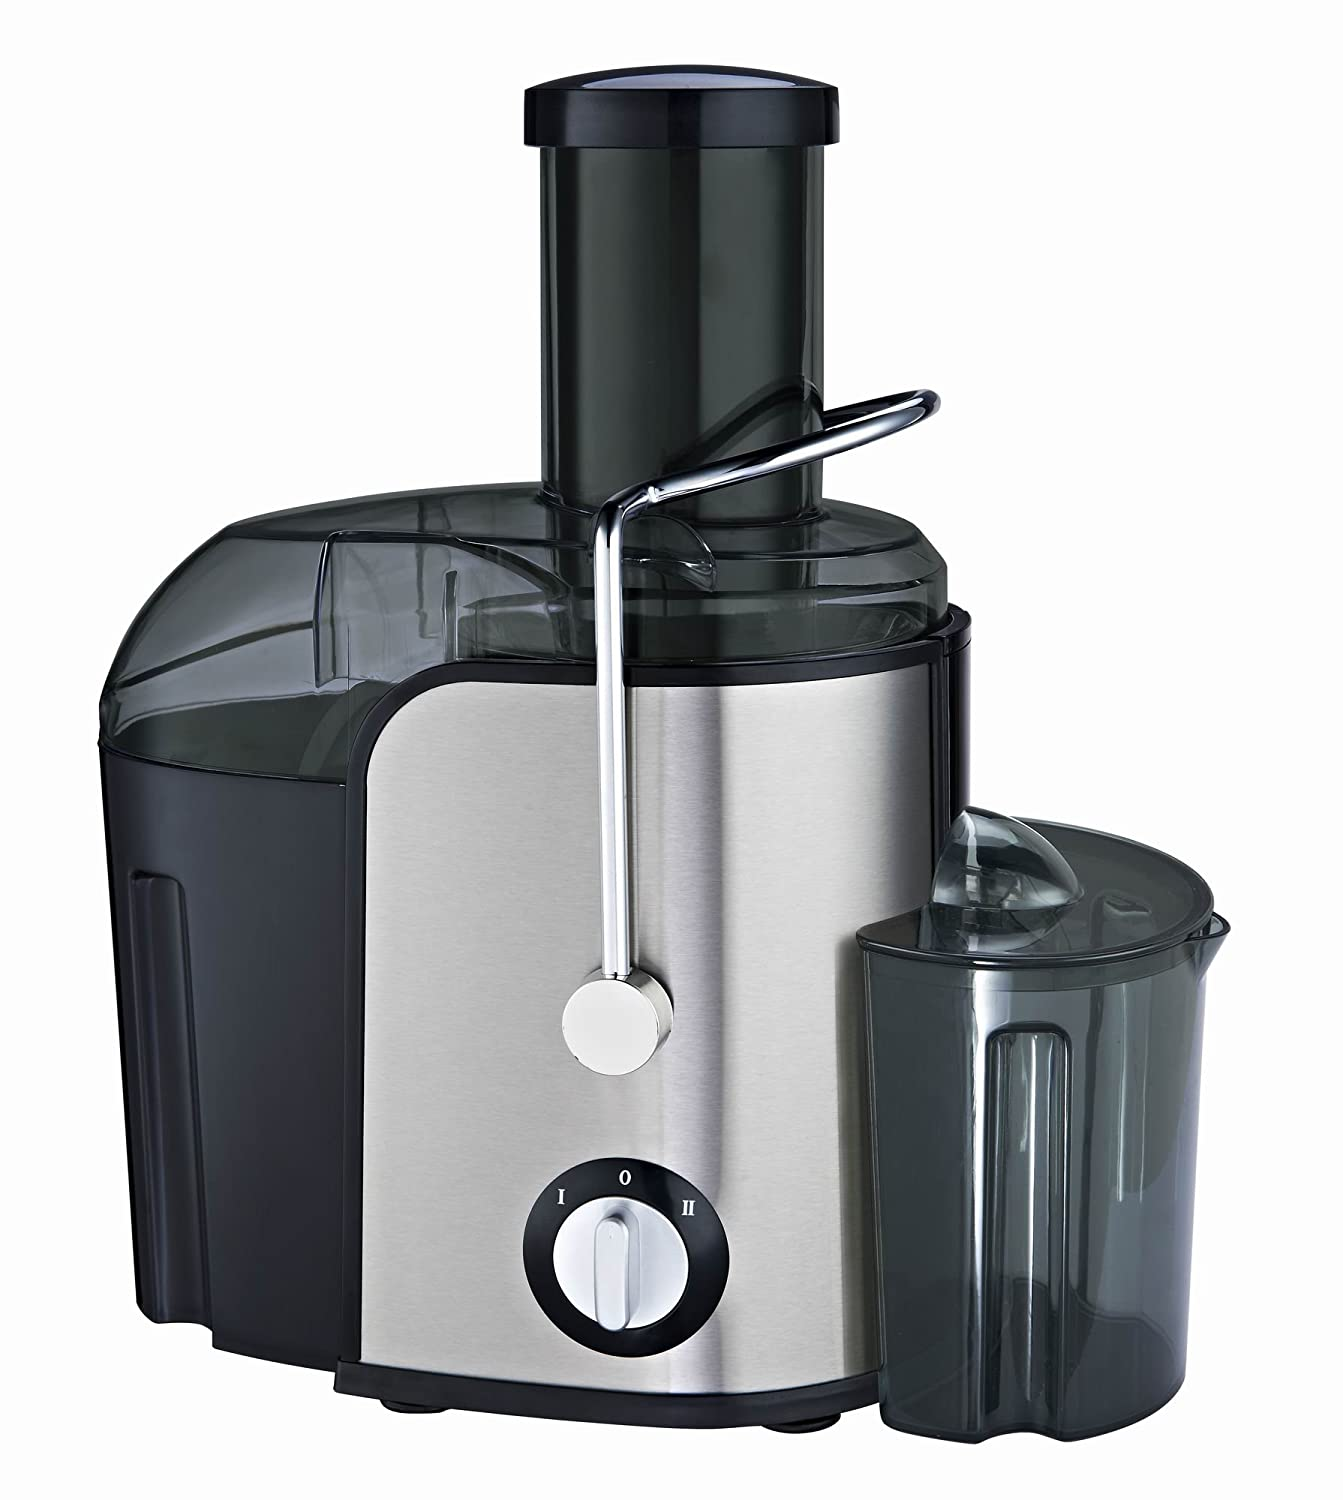 Slow Juicer Terbaik : Slow Juicer Harga. Homemade Juice Easily. Slow Juicer Silver Hwsbe18 W Drum Set. Picture Of ...